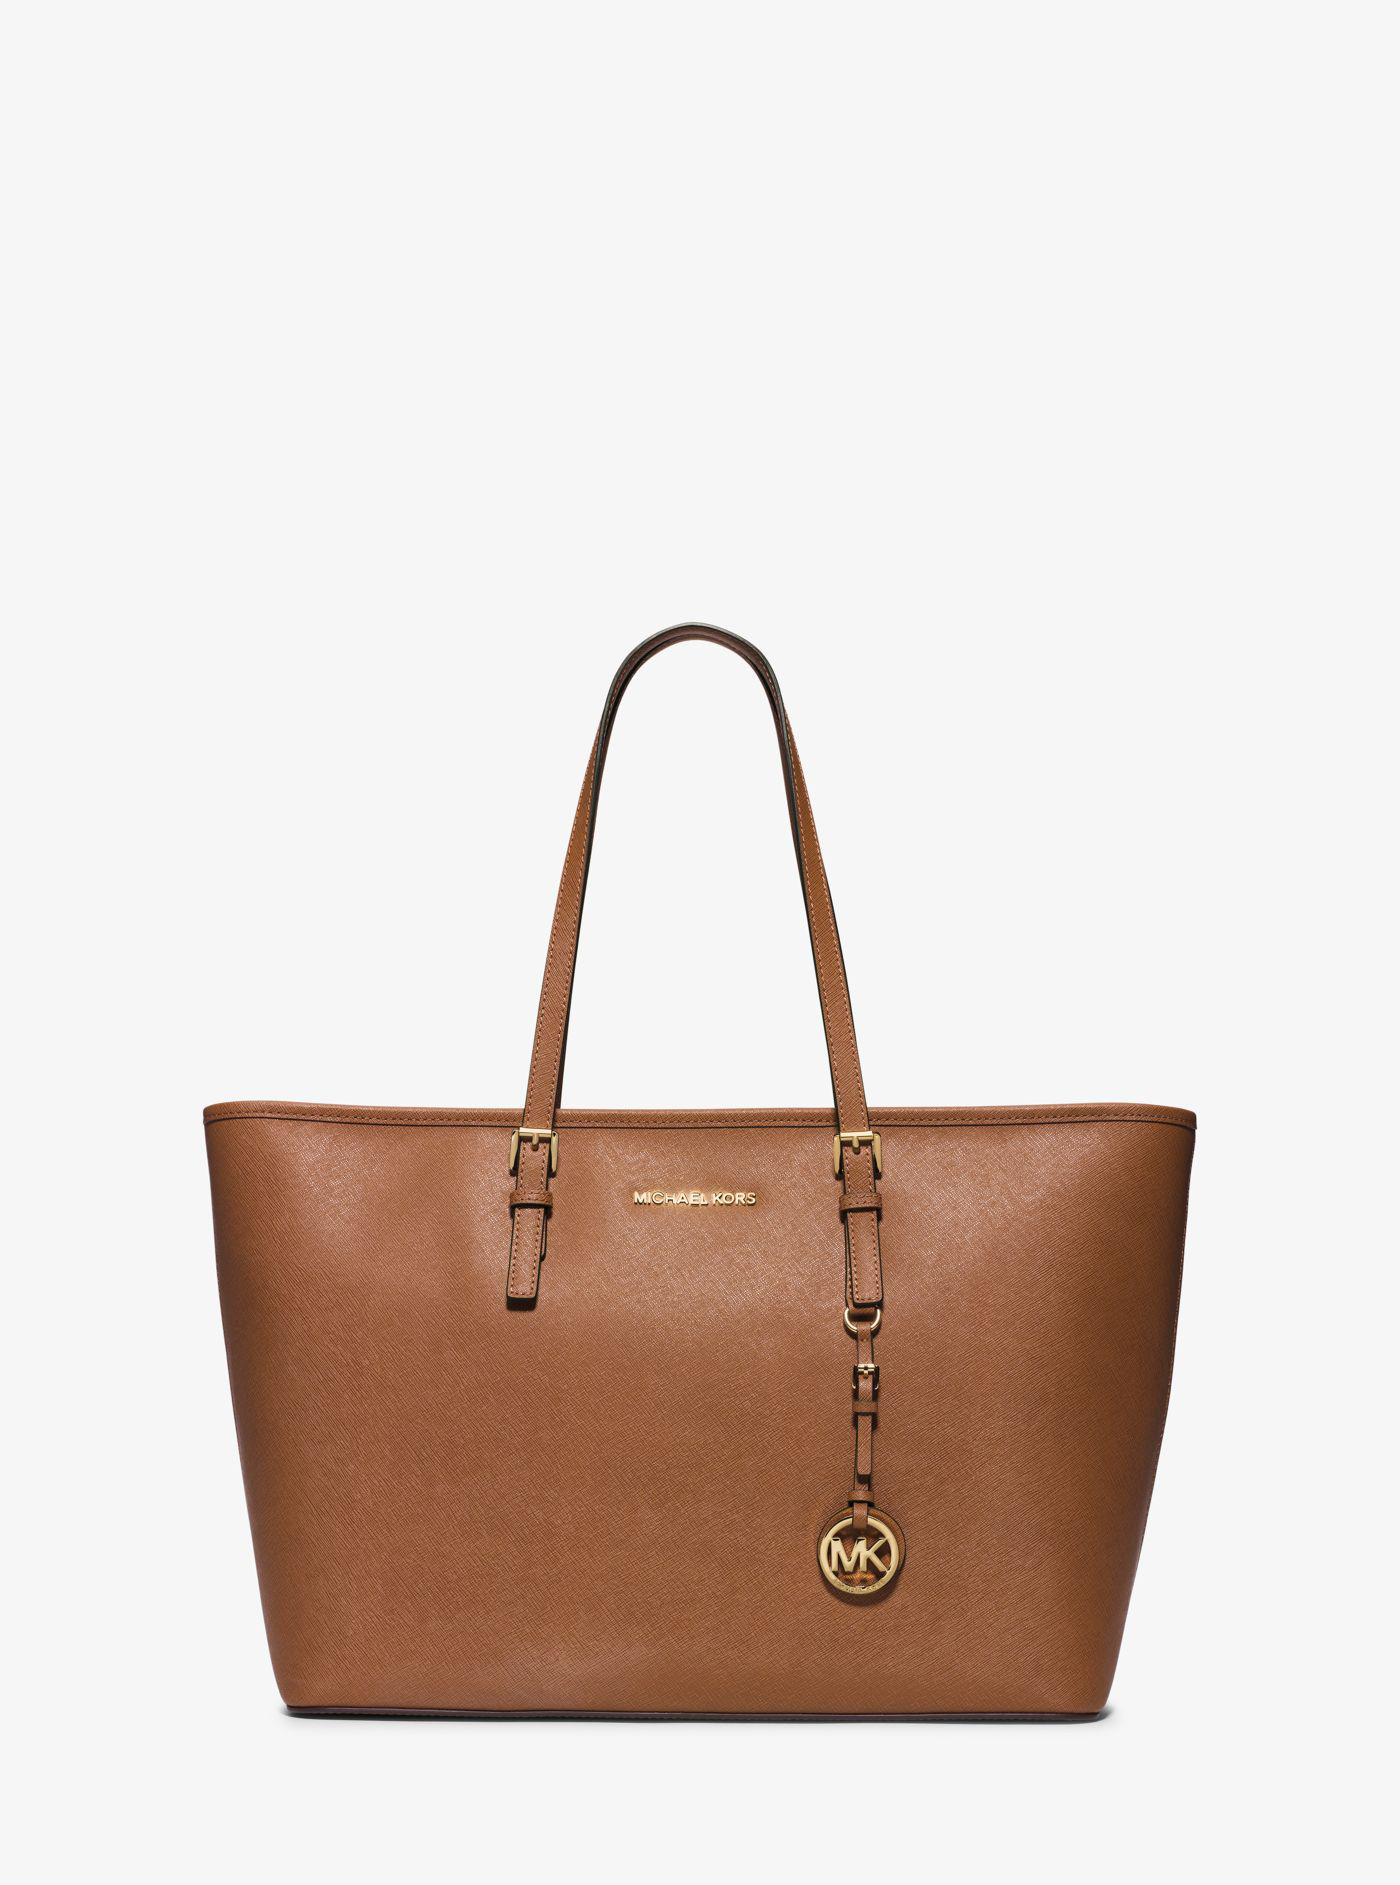 f59b17e9291a Michael Kors Jet Set Travel Saffiano-Leather Tote in Brown - Lyst